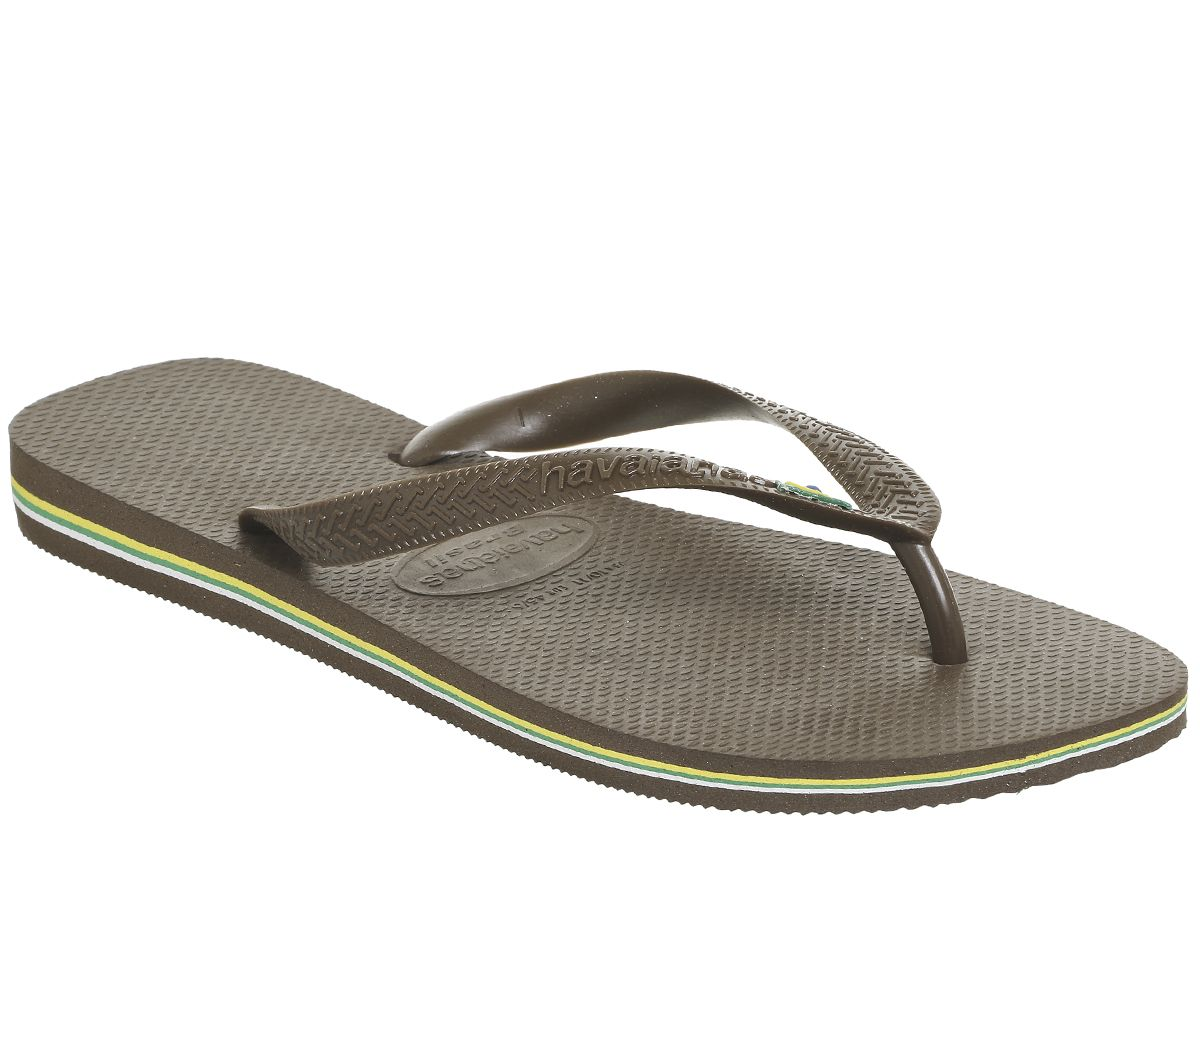 43f7043962 Havaianas Brazil Flip-flop Dark Brown - Sandals